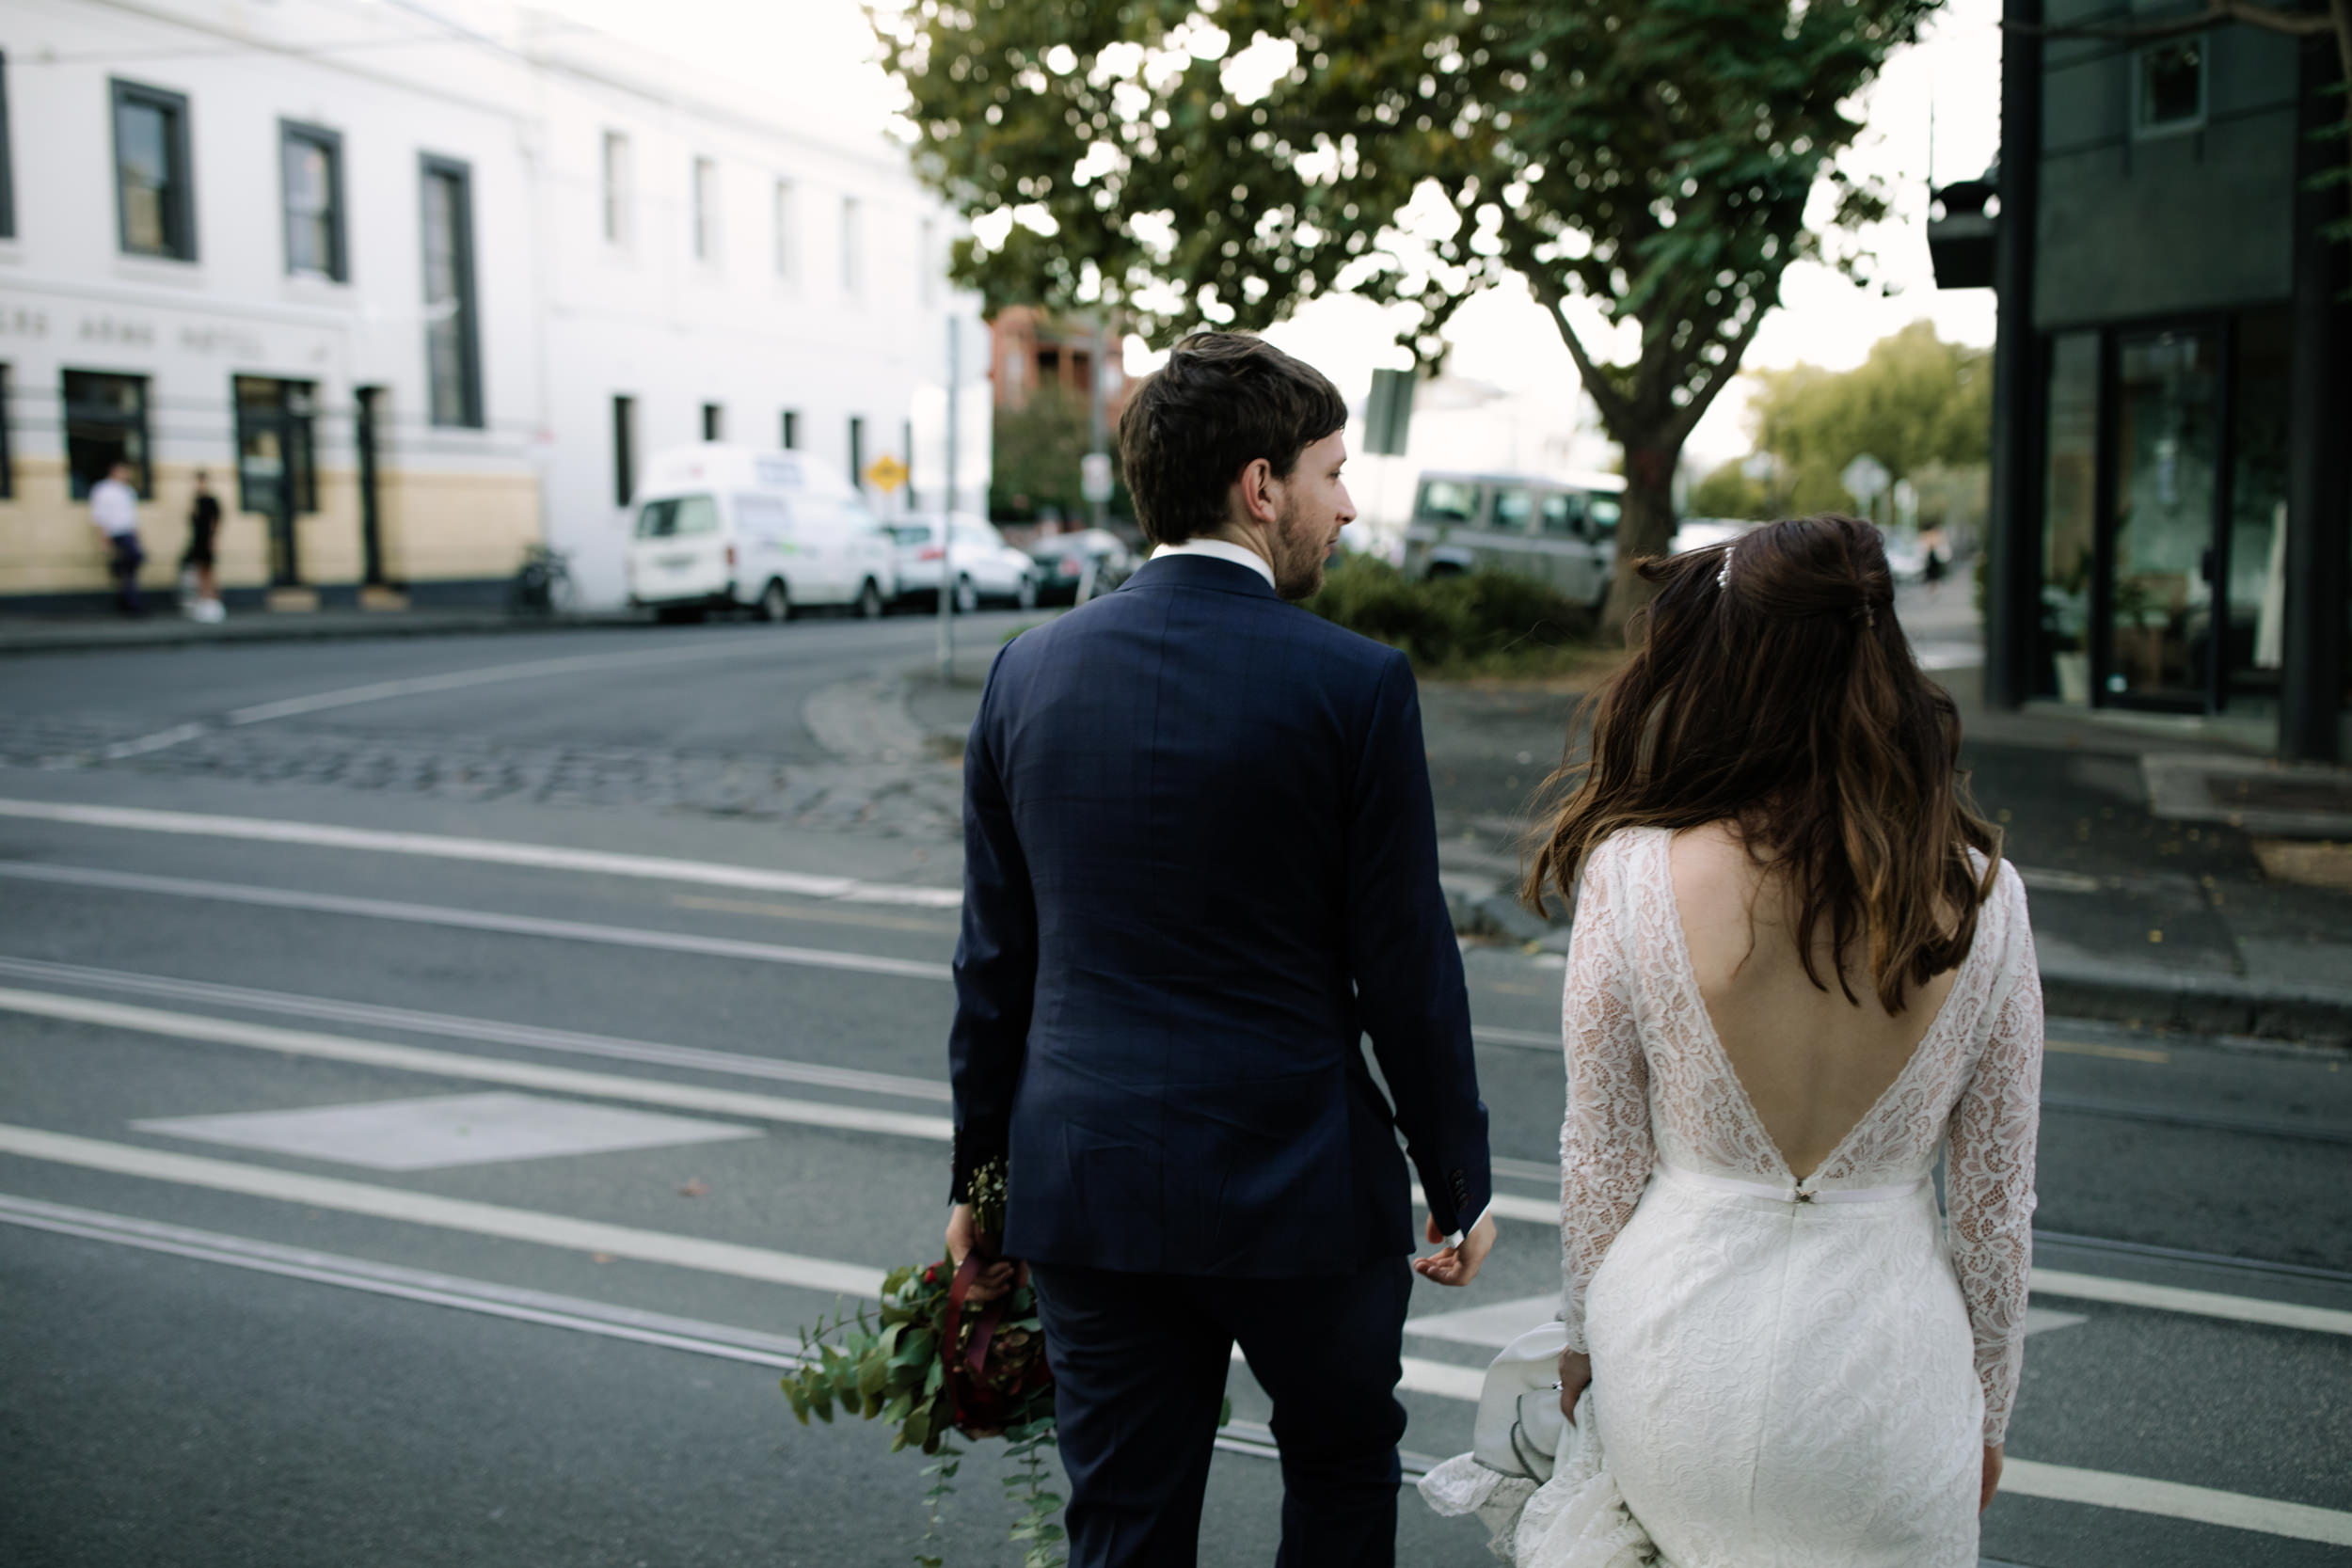 I_Got_You_Babe_Weddings_Emily_Matt_Rupert_Glasshaus_Melbourne0150.JPG